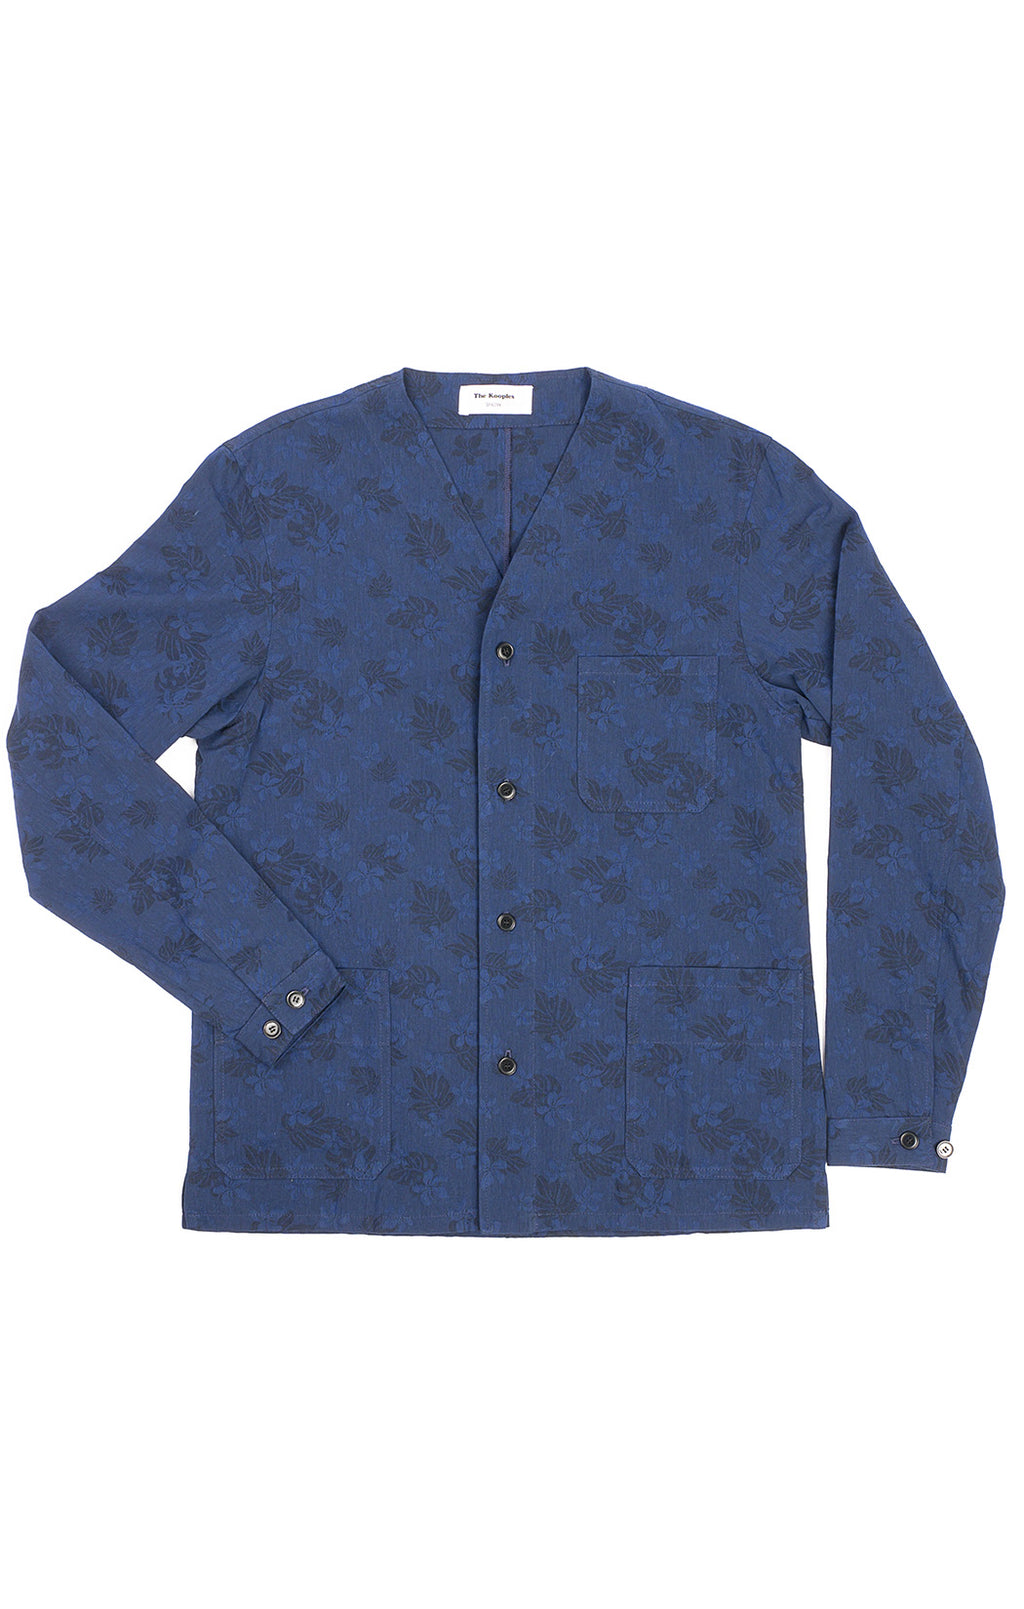 Navy blue brocade like fabric button down, v neck long sleeve shirt/jacket with front patch pockets